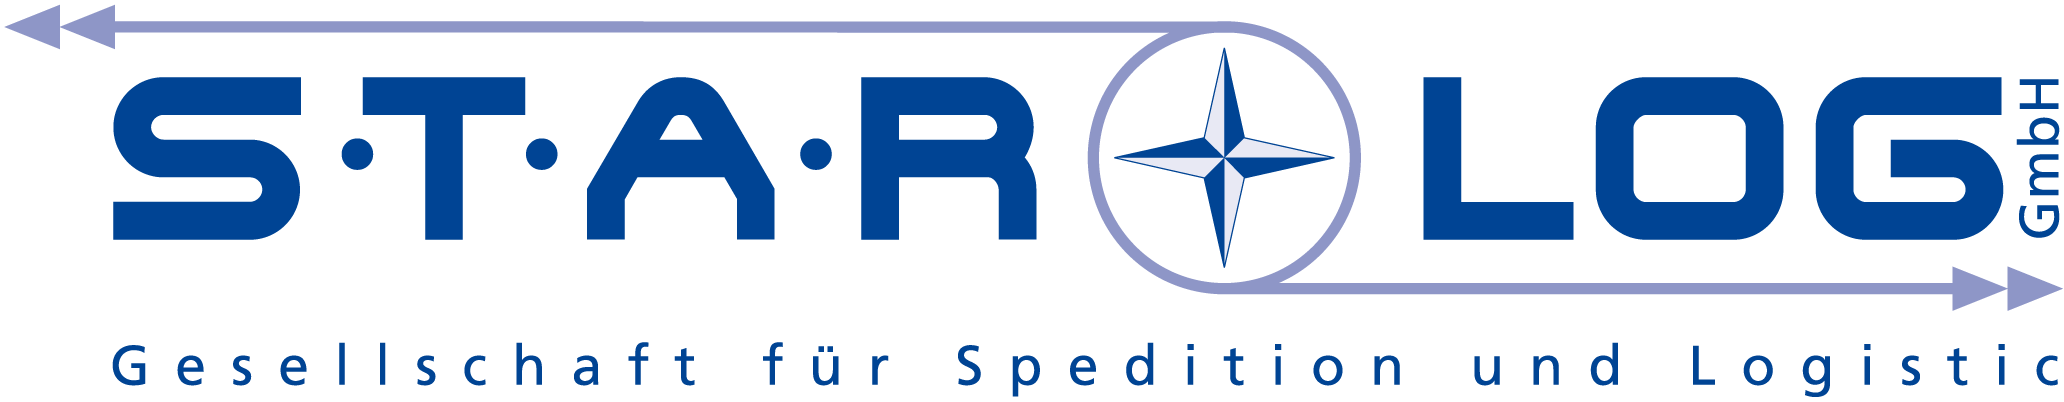 STAR LOG GmbH